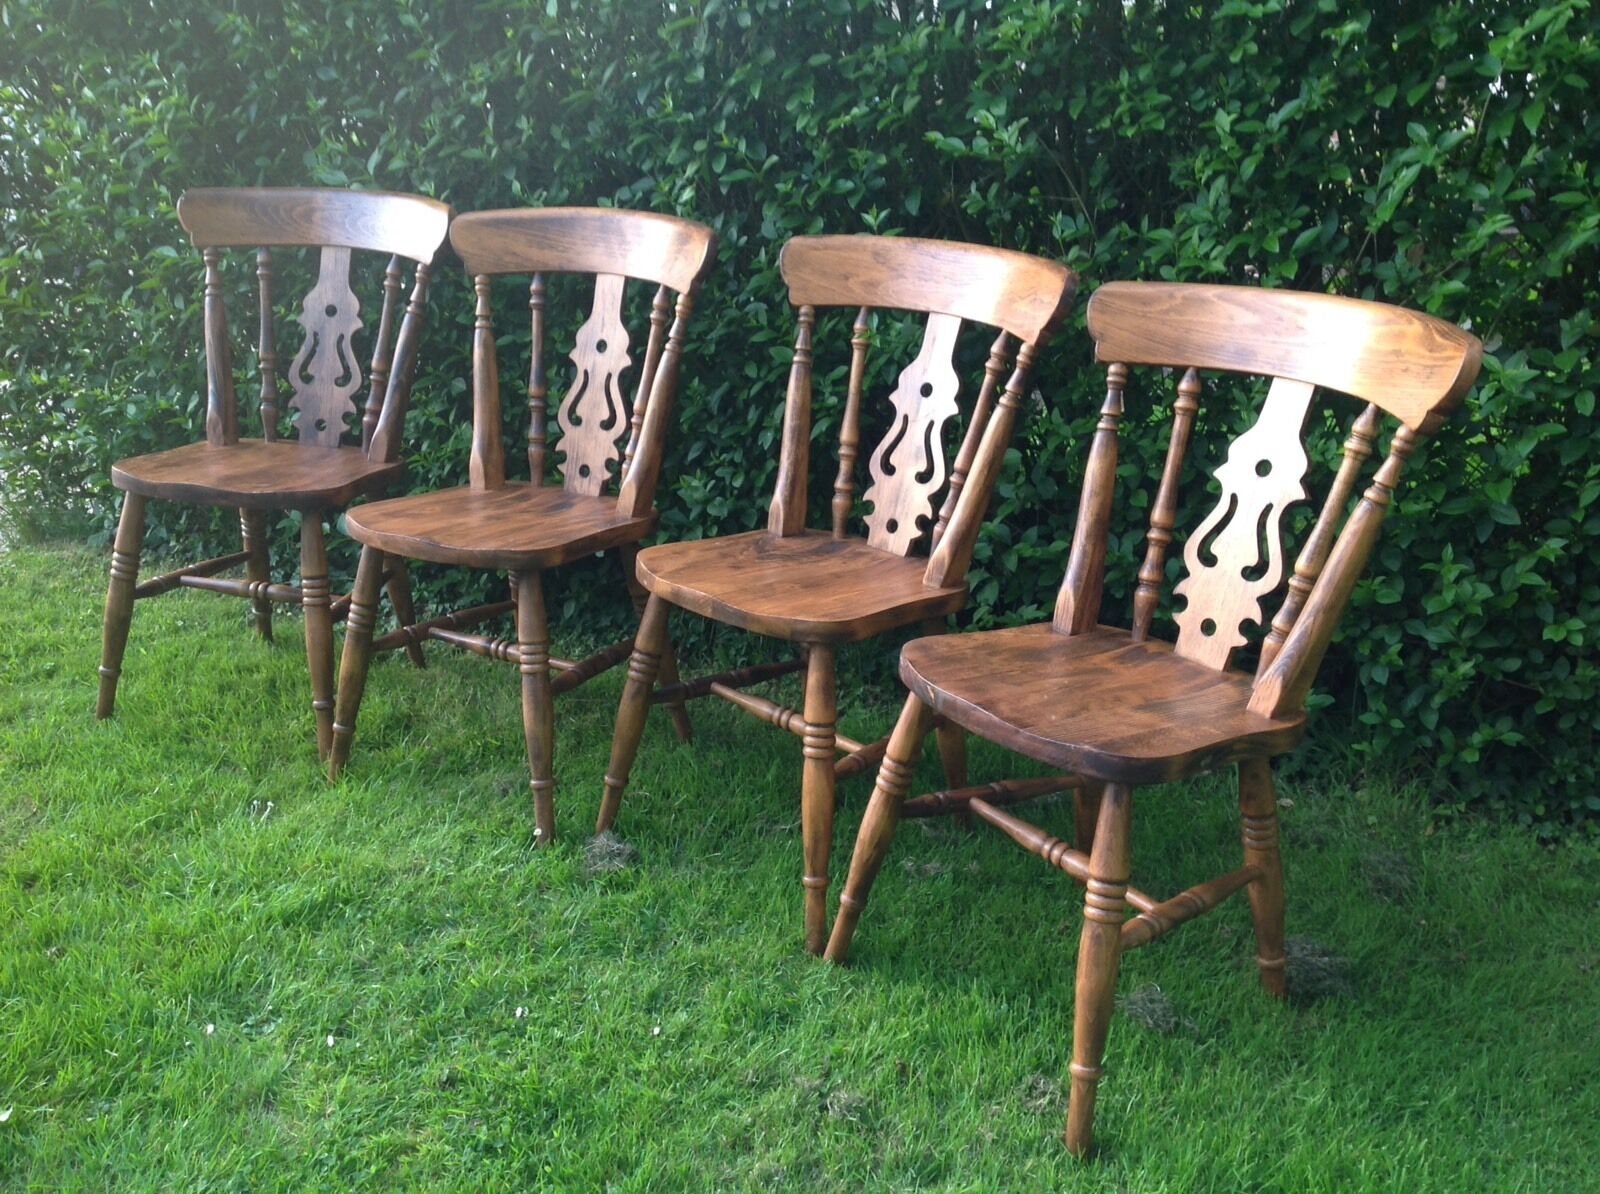 pine kitchen chairs ireland lawn home depot set of 4 vintage dining 55 00